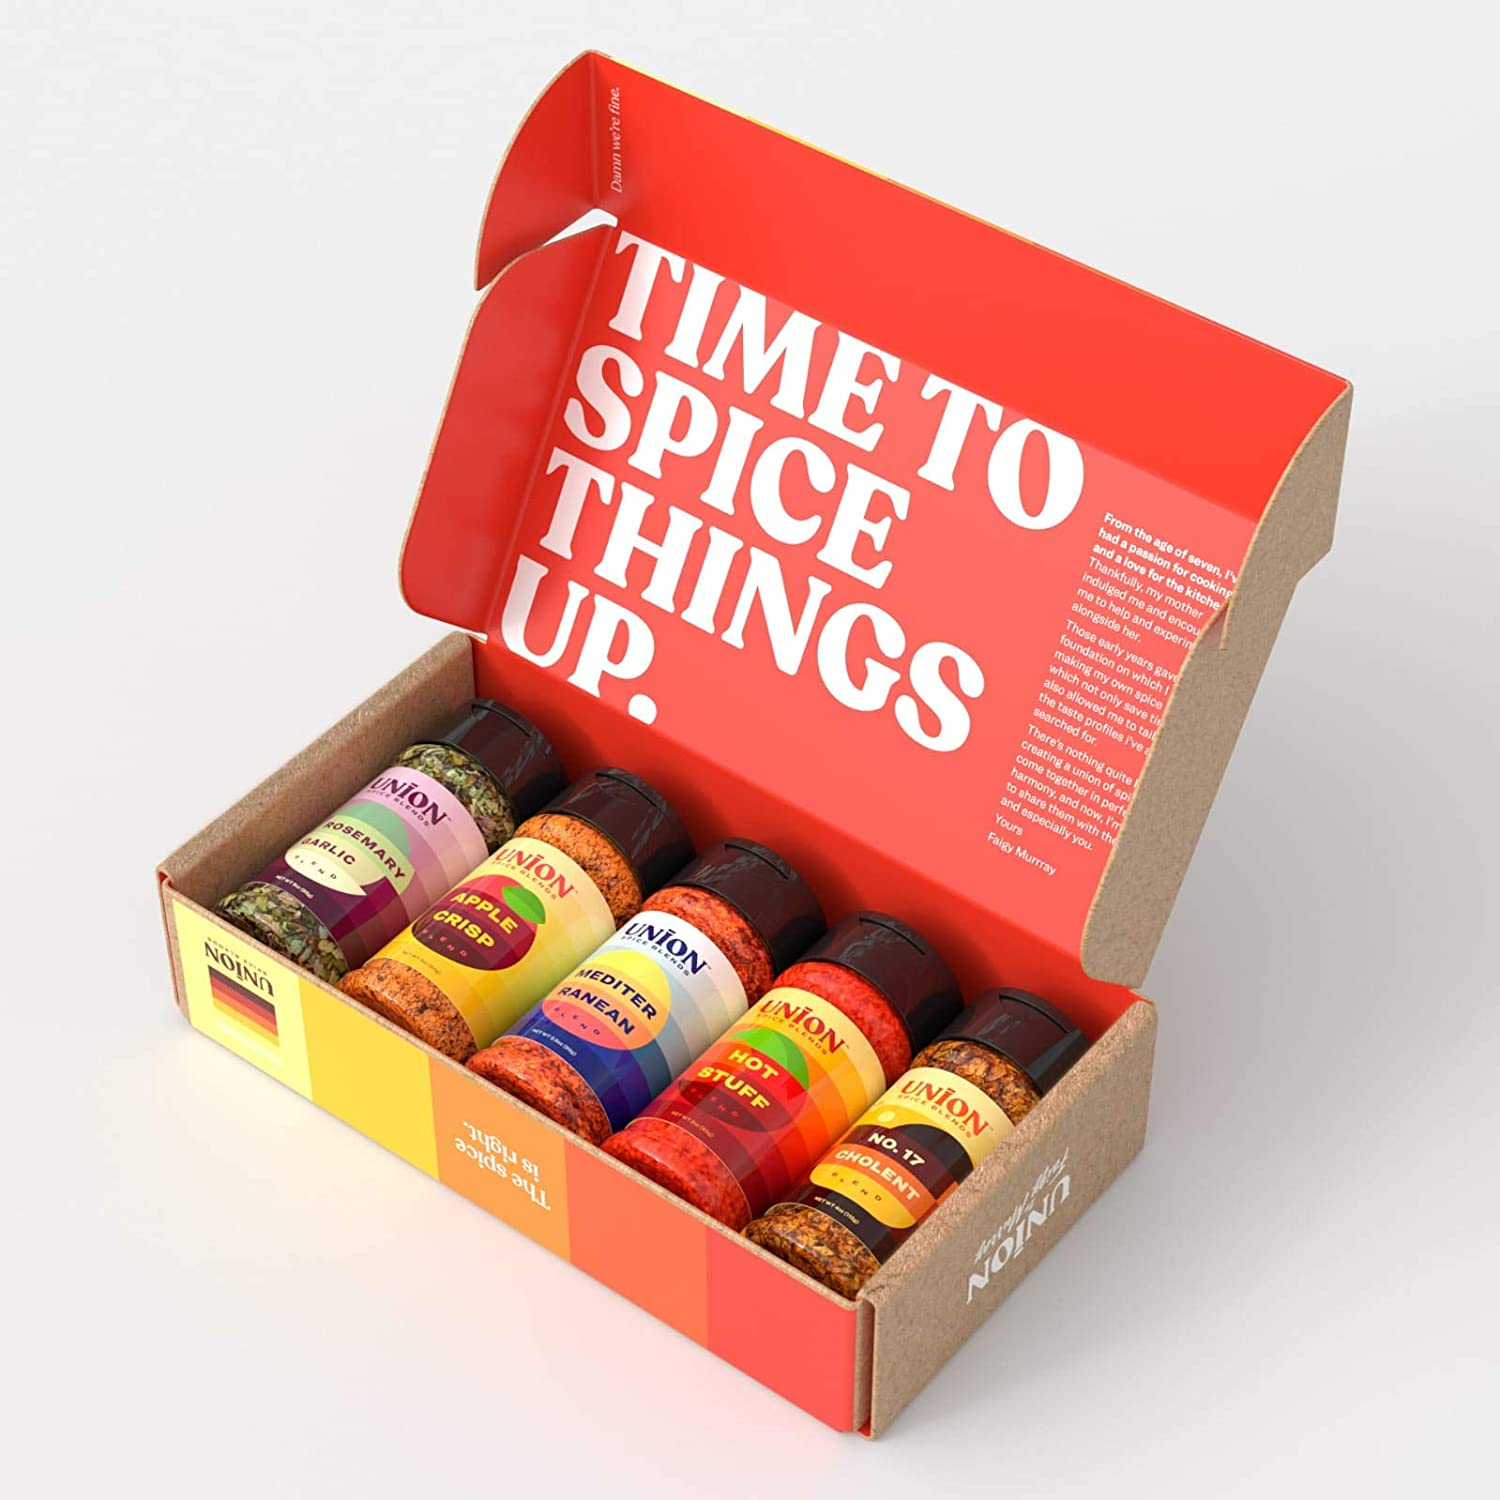 Union Spice Blends Variety Pack of Five Different Spices, Gluten Free, Non GMO, Nut Free, Kosher, 3 oz. (Gift Set)